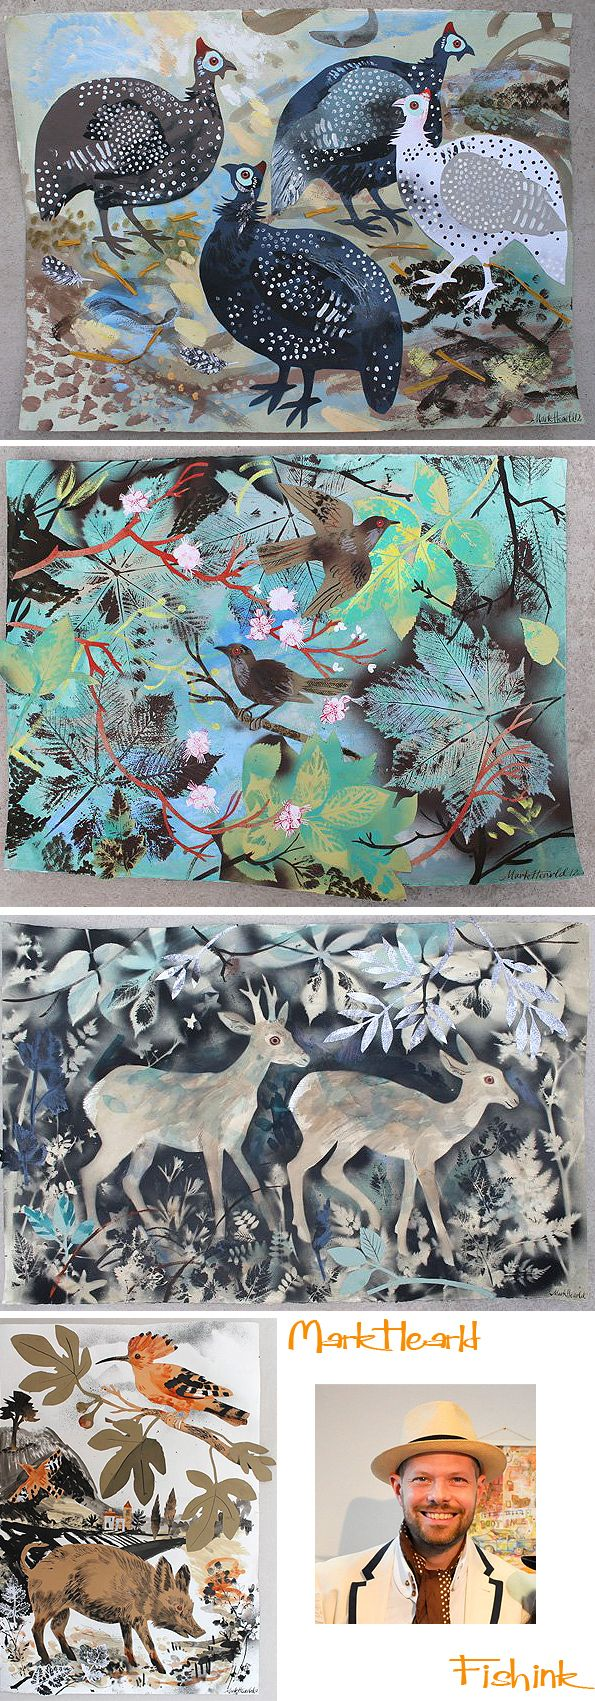 St. Judes in the City. An Exhibition of new work by Angie Lewin, Mark Hearld…